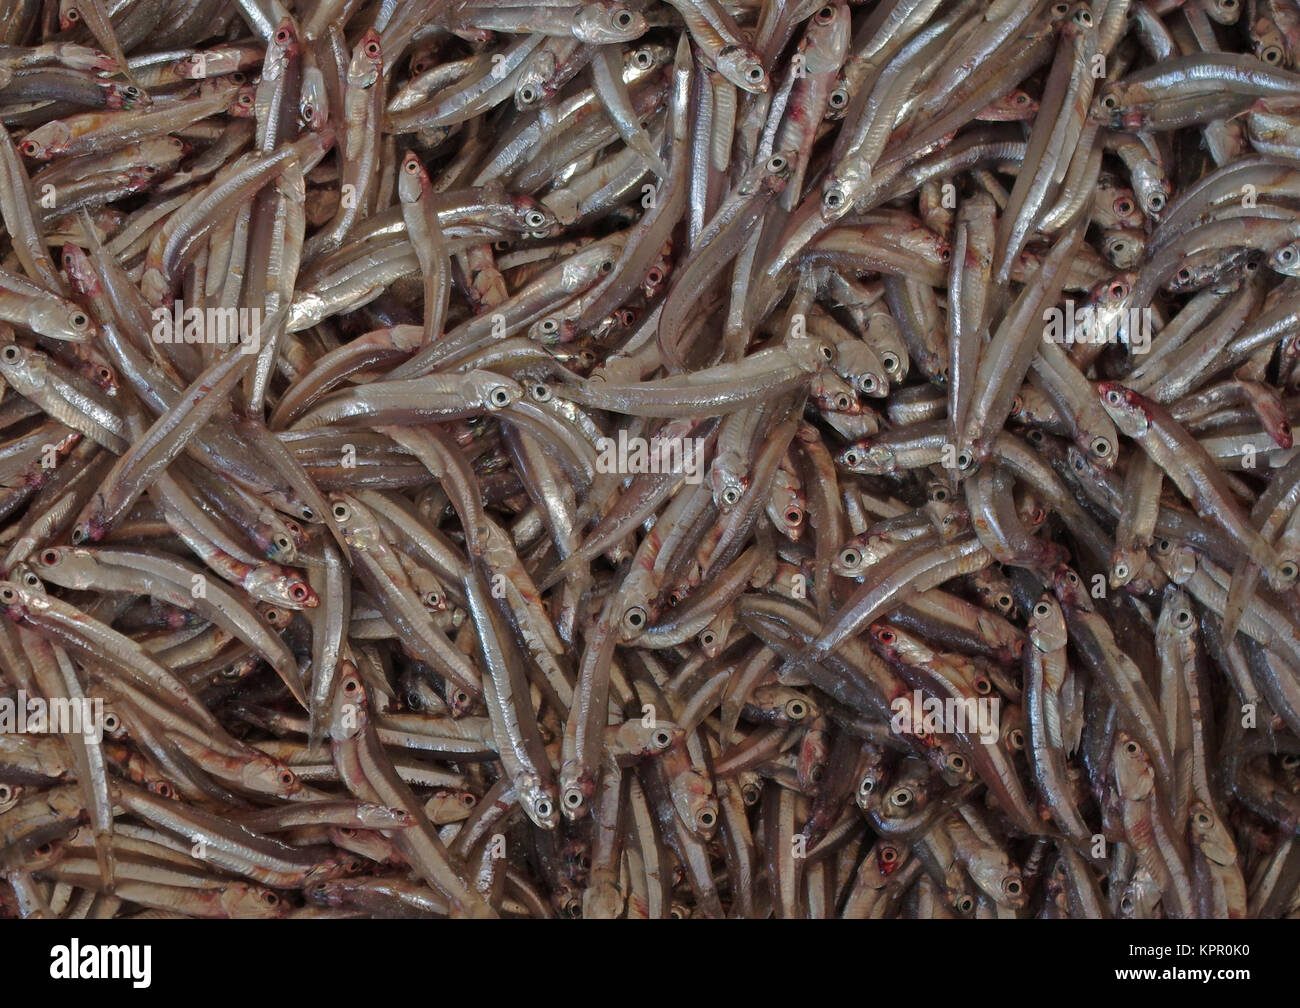 Anchovies at the fish market in Oman - Stock Image